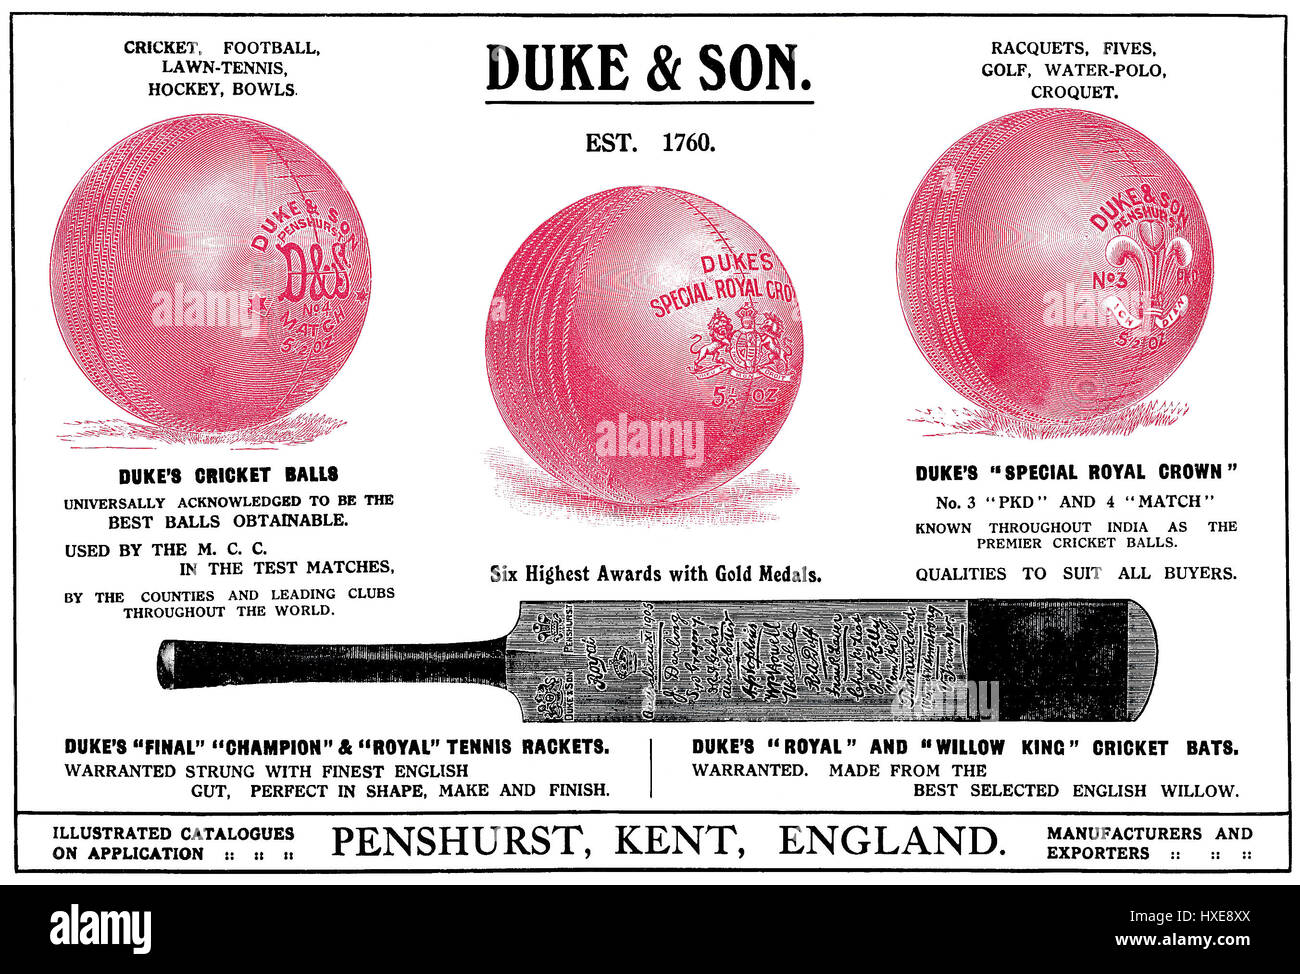 1922 Indian advertisement for Duke & Son sports equipment. Published in the Times Of India Annual, 1922. - Stock Image